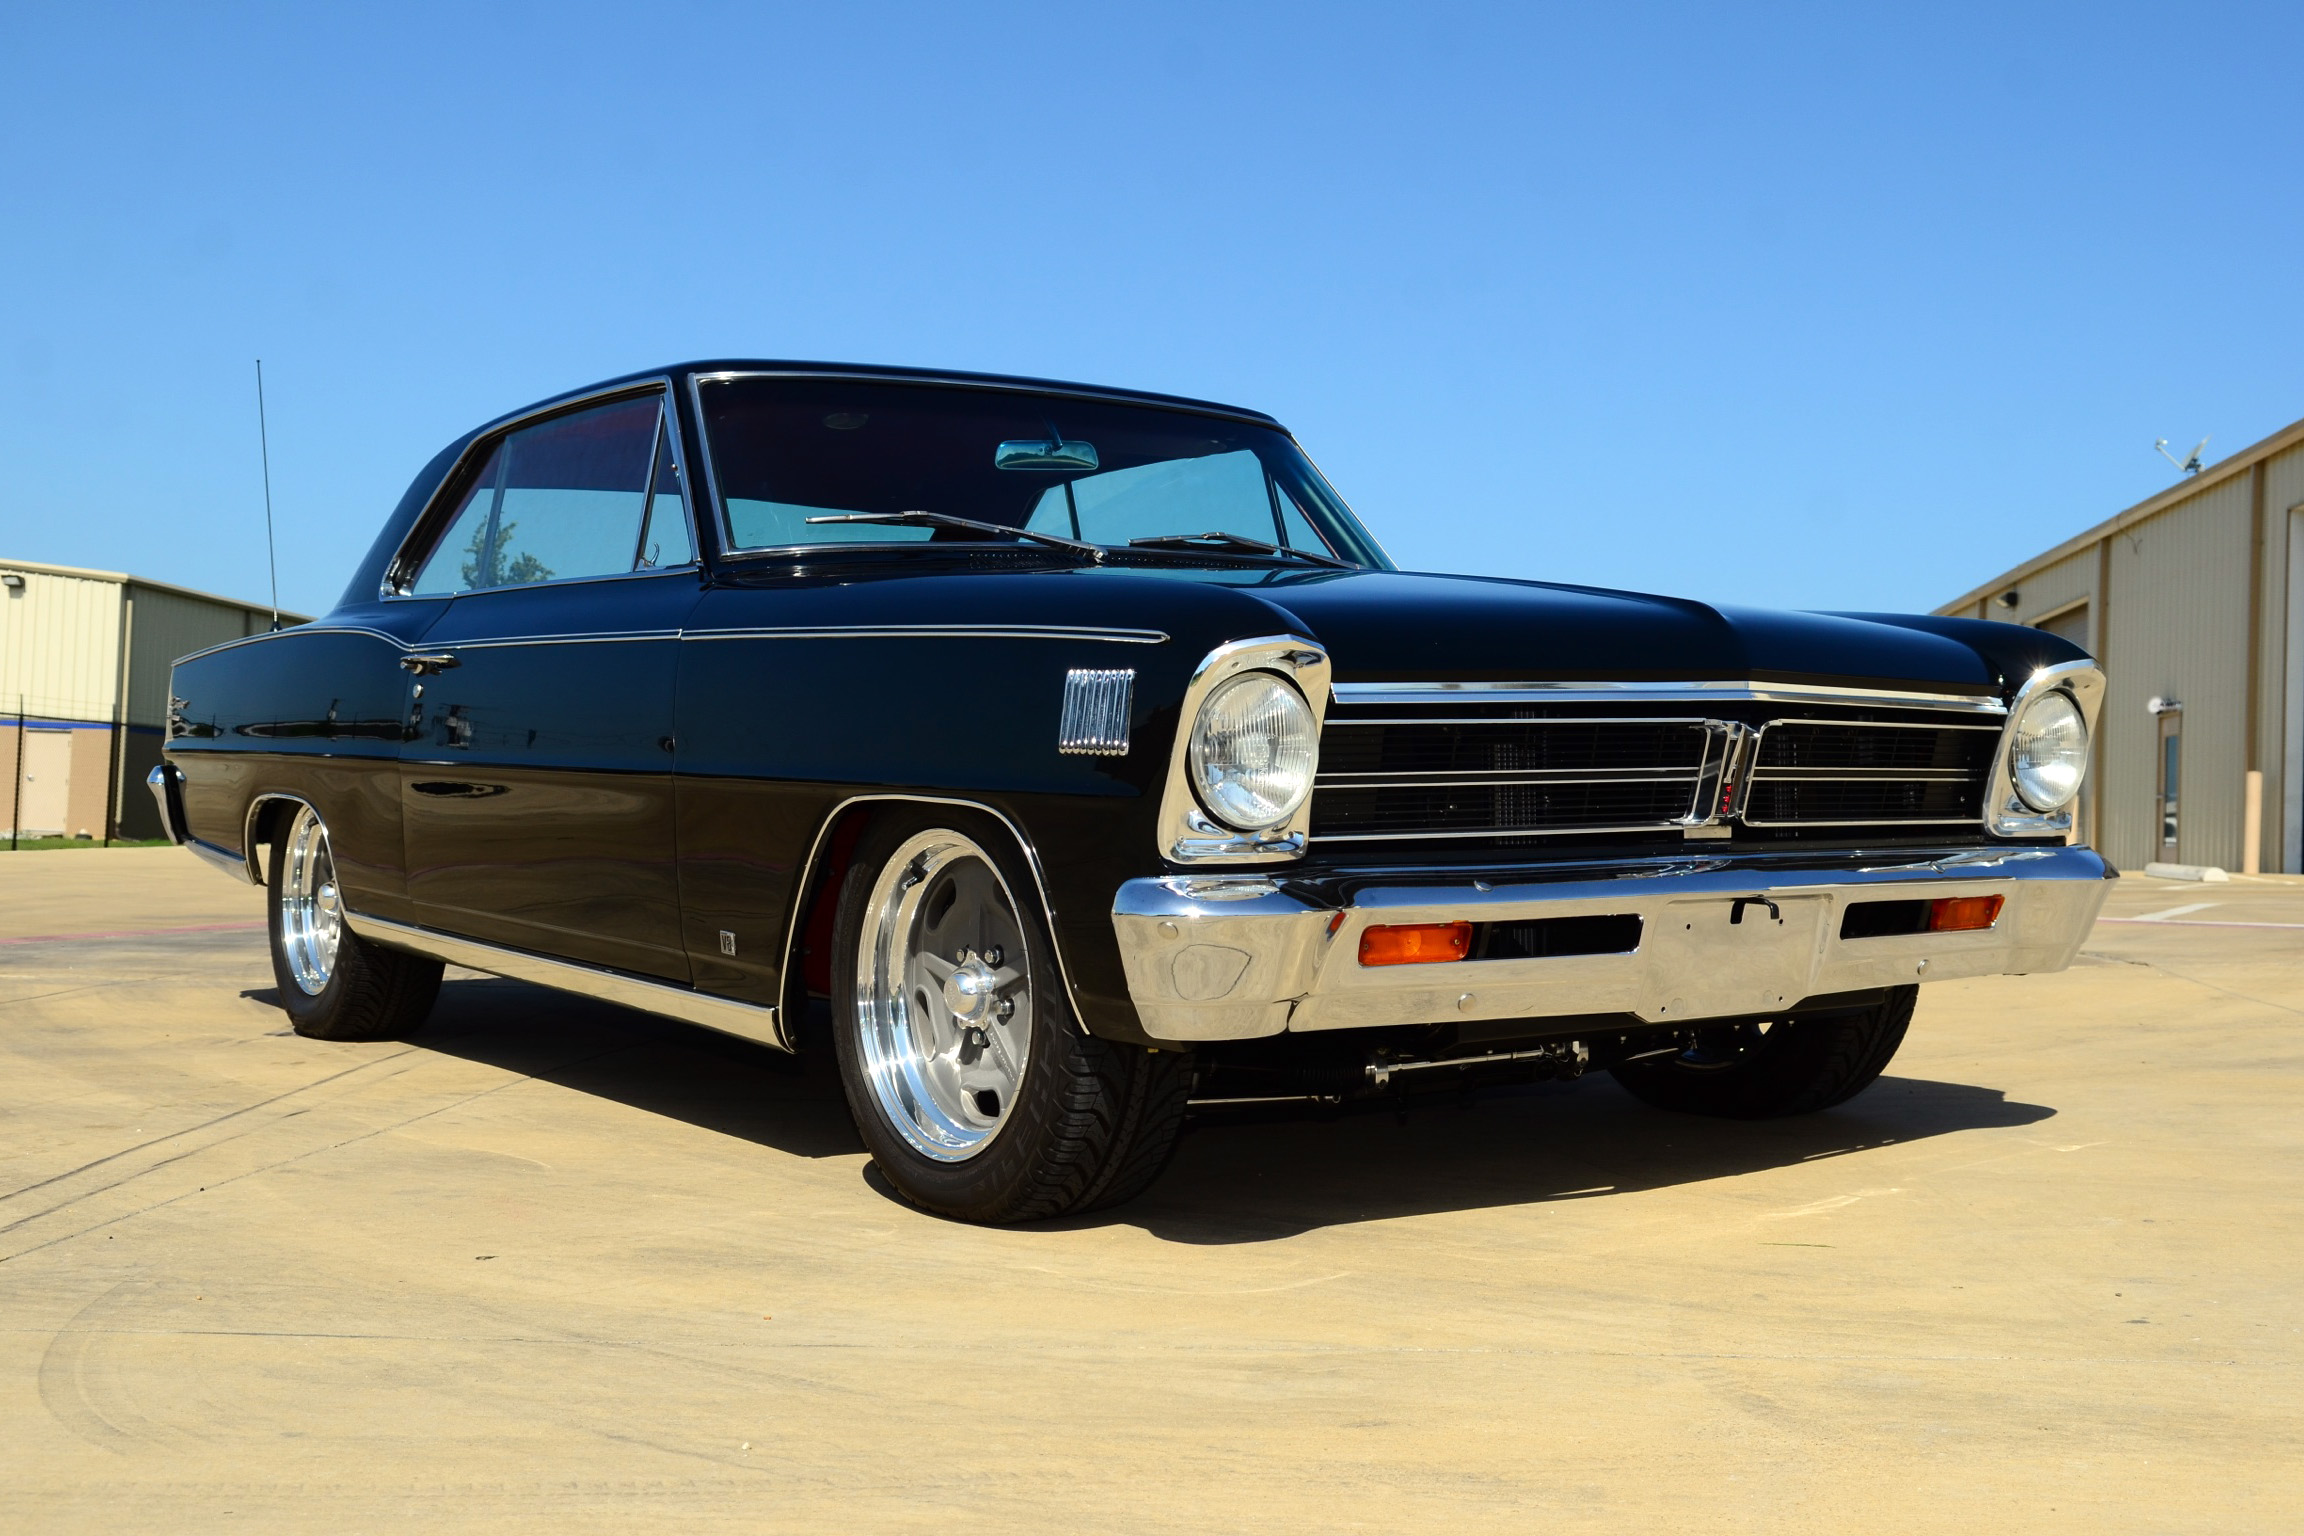 Classic Chevy Cars For Sale In Canada